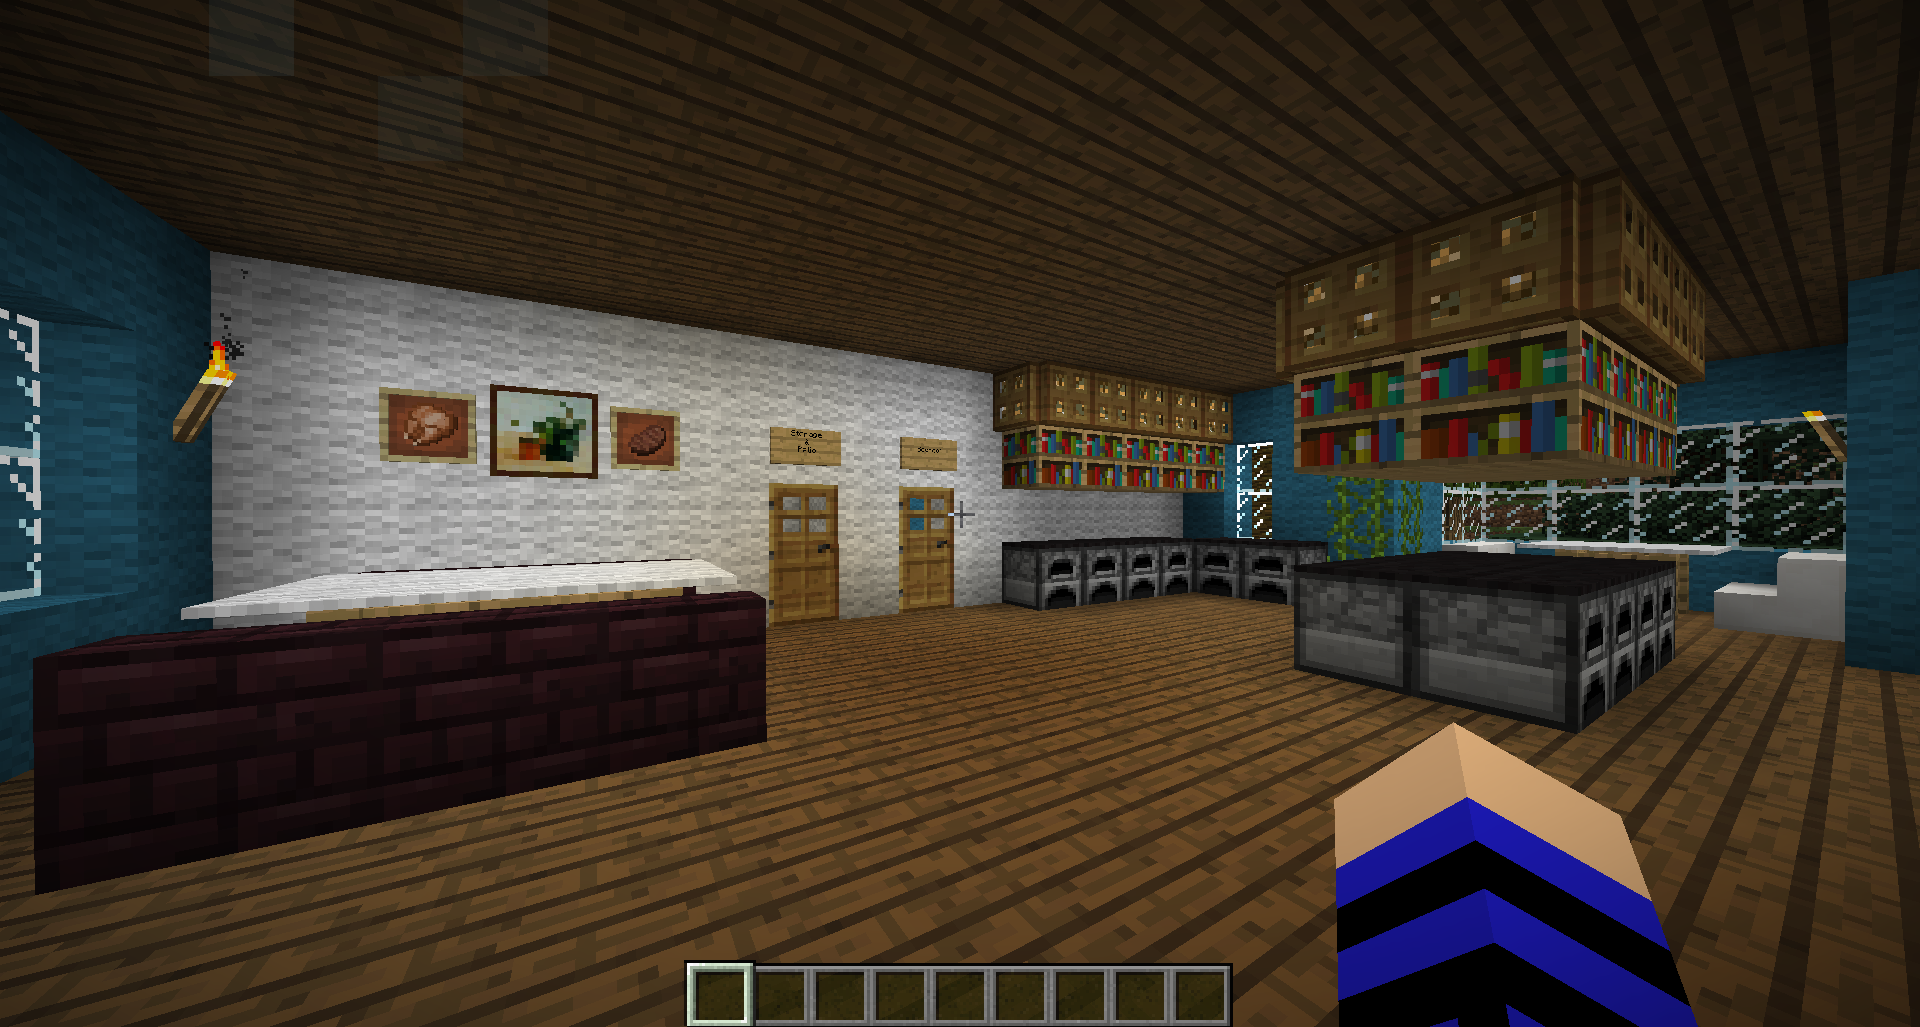 108.170.54.82:38003 : LizC864 Minecraft: I did some updates on my ...